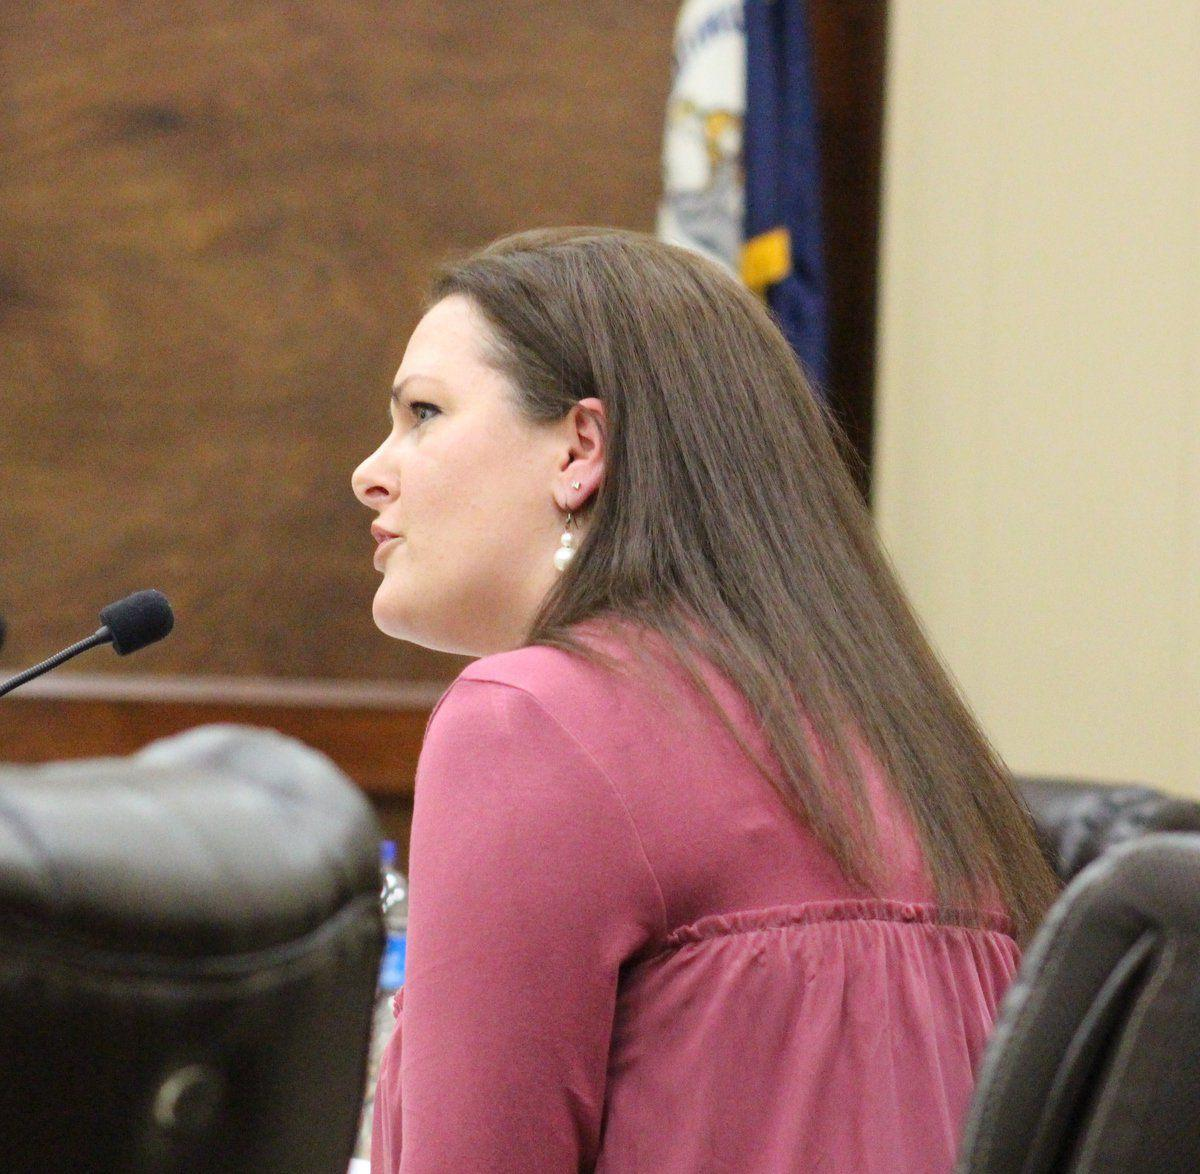 Fiscal Court banishes Marshall County resident from all county parks for 3 years